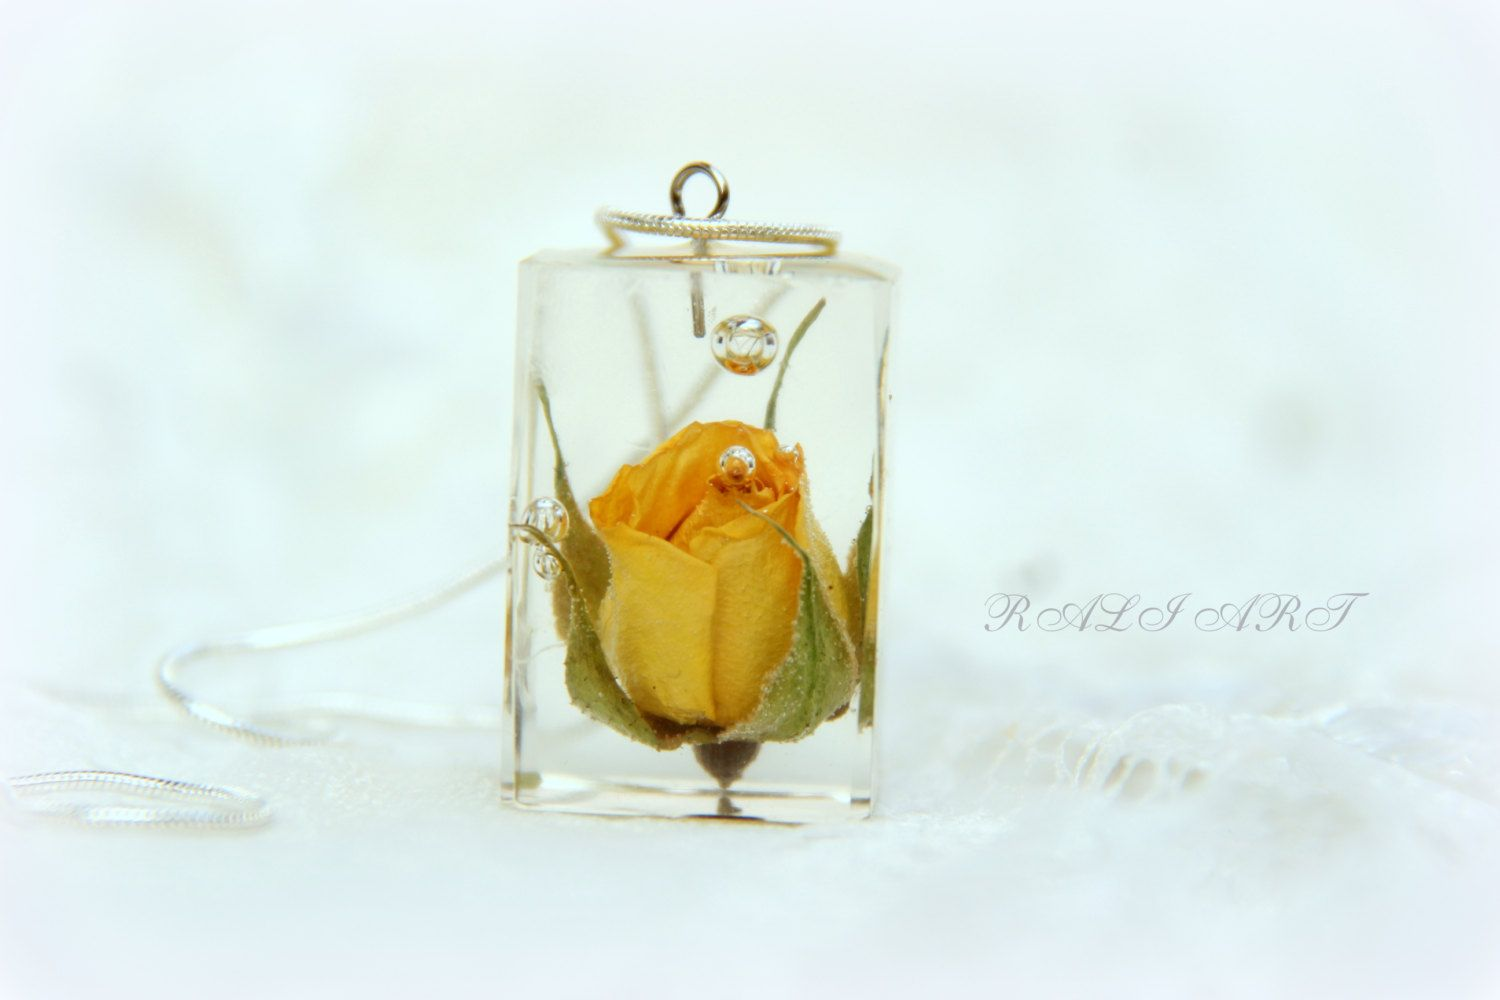 Resin real flower resin pendant pendant rose pendant resin yellow resin real flower resin pendant pendant rose pendant resin yellow rose resin mozeypictures Image collections